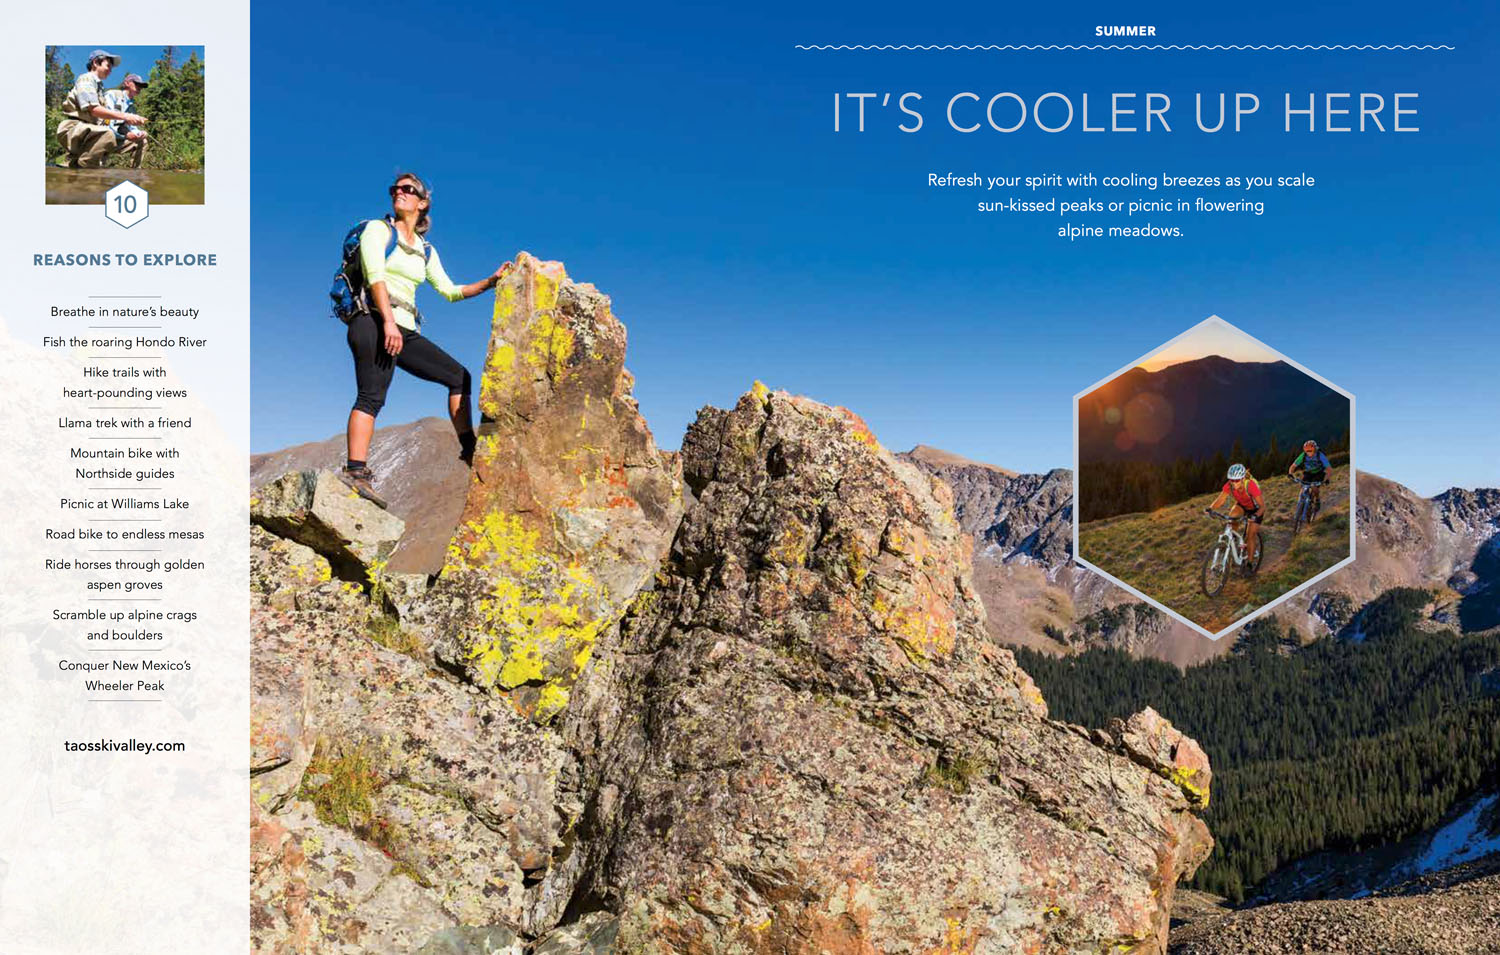 Taos Ski Valley Visitor Guide Peak Hike Photographer M DeYoung